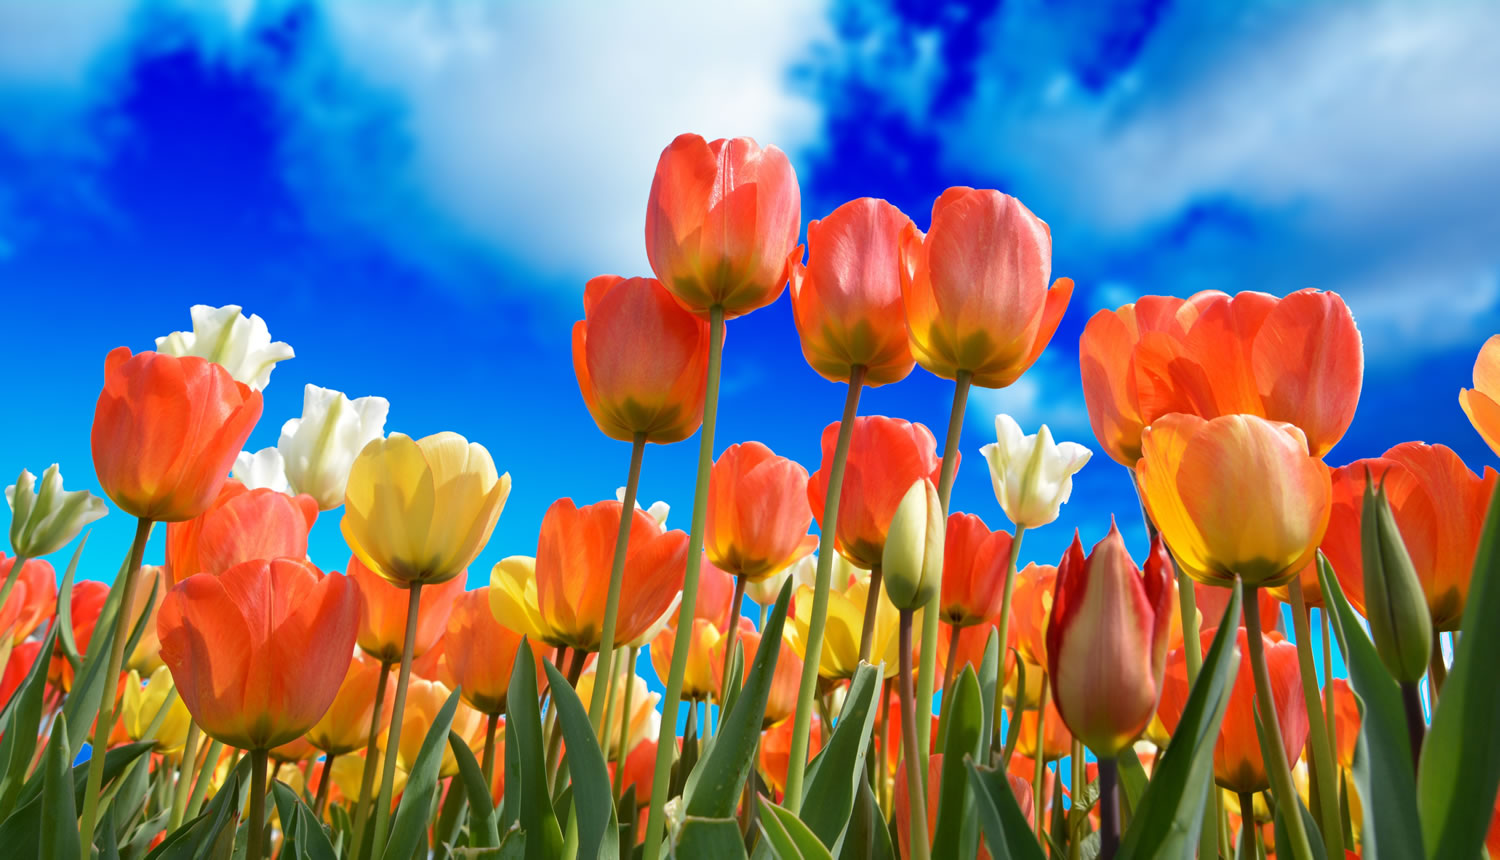 Tulips And Blue Sky Wallpaper Mural